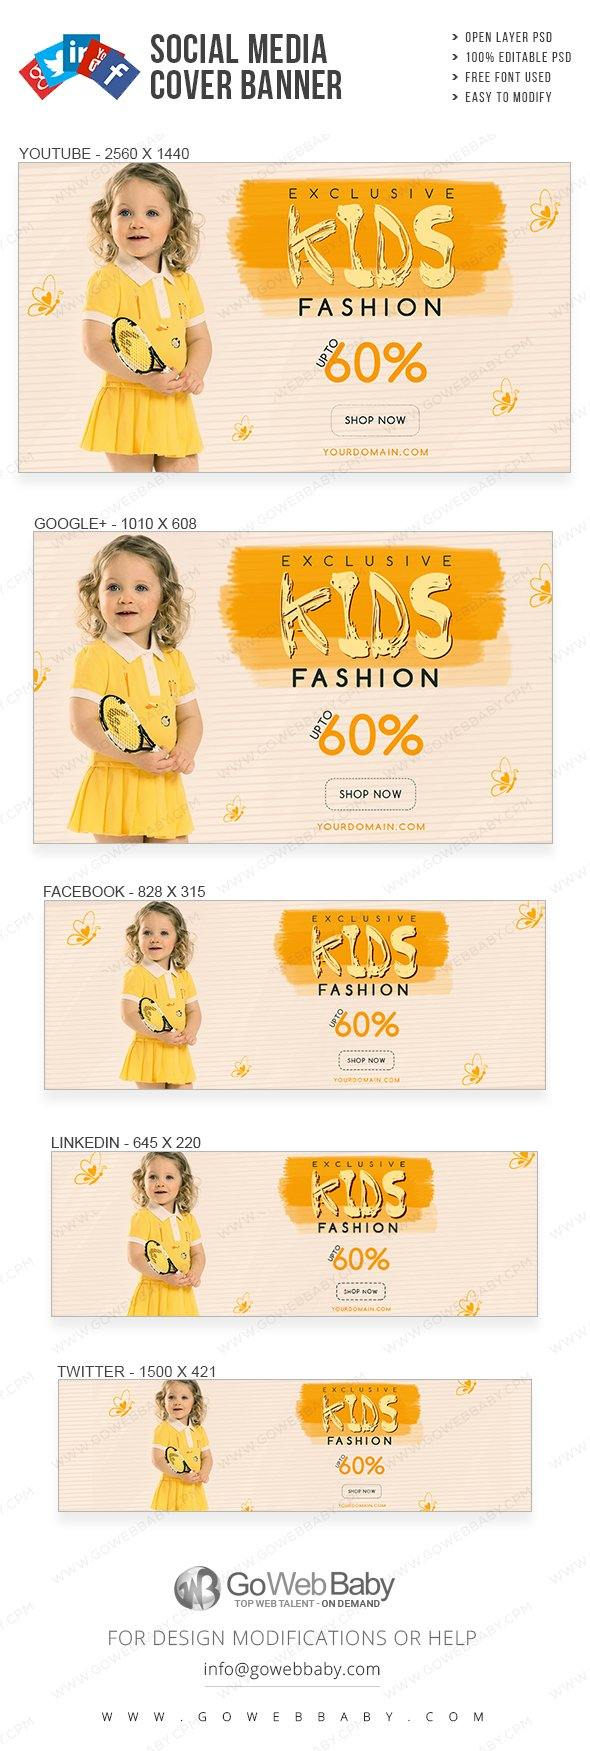 Social Media Cover Banner - Exclusive Kids Fashion For Website Marketing